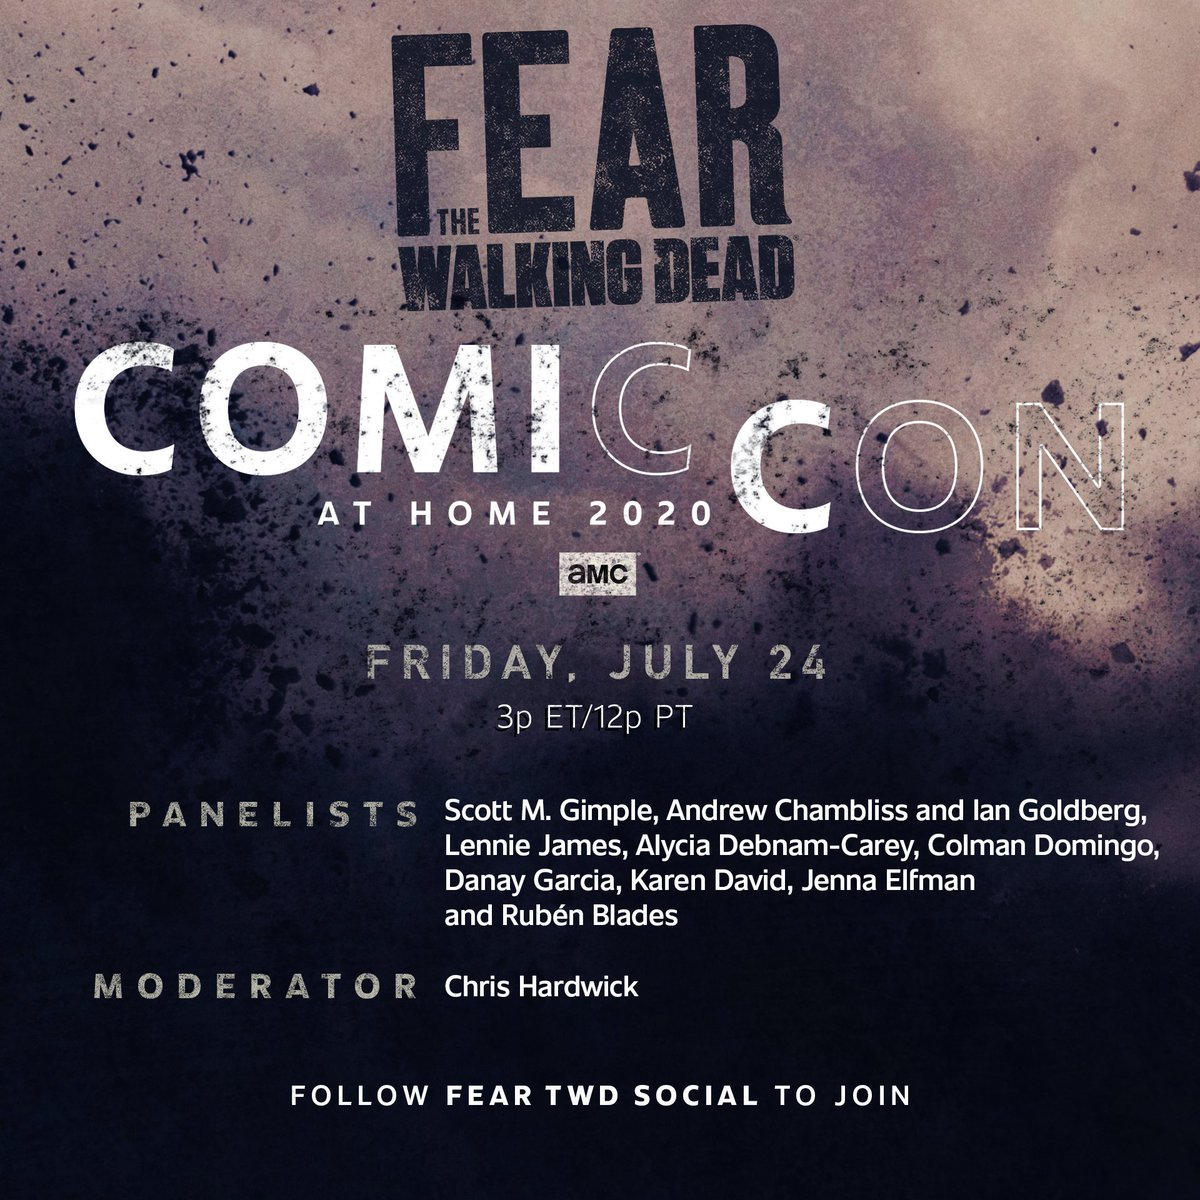 Replying to @FearTWD: Get ready for a look at the new season of #FearTWD with #ComicConAtHome on July 24th.